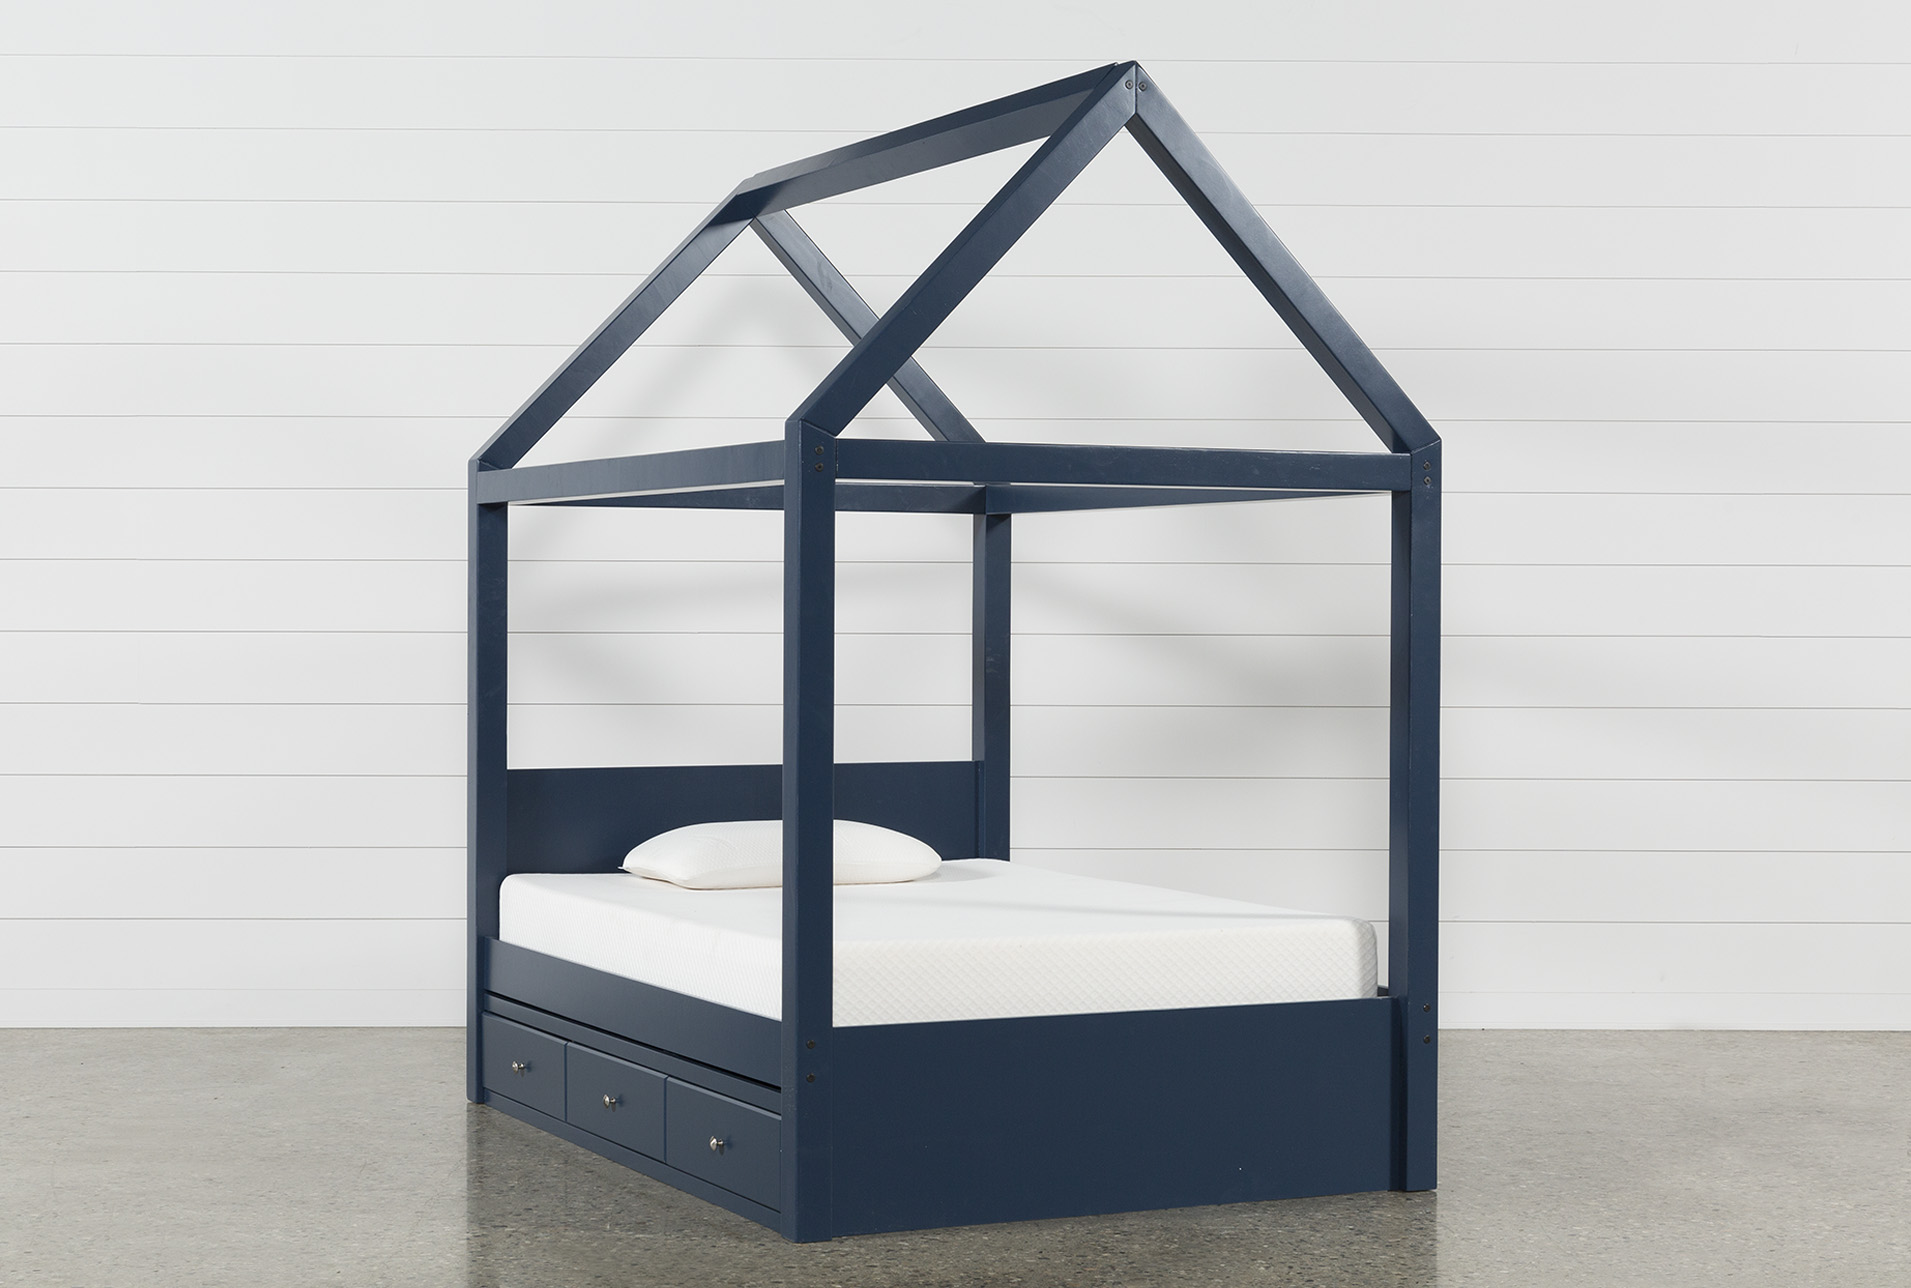 Taylor Navy Full Canopy House Bed With 3- Drawer Storage (Qty 1) has been successfully added to your Cart. & Taylor Navy Full Canopy House Bed With 3- Drawer Storage | Living Spaces